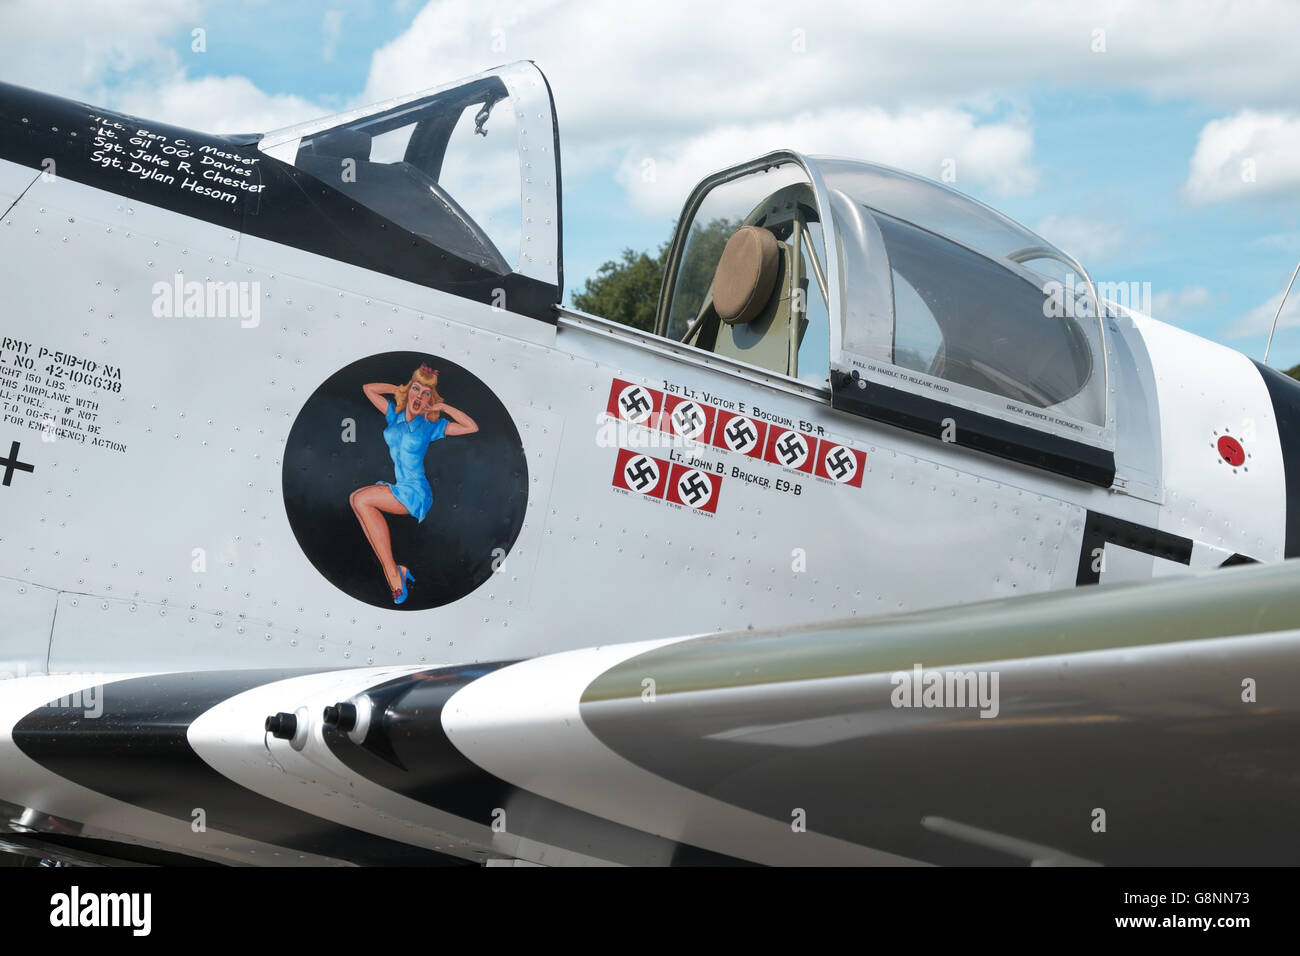 Titan T-51 Mustang a three quarter size scale replica of a World War 2 P-51 Mustang - Stock Image